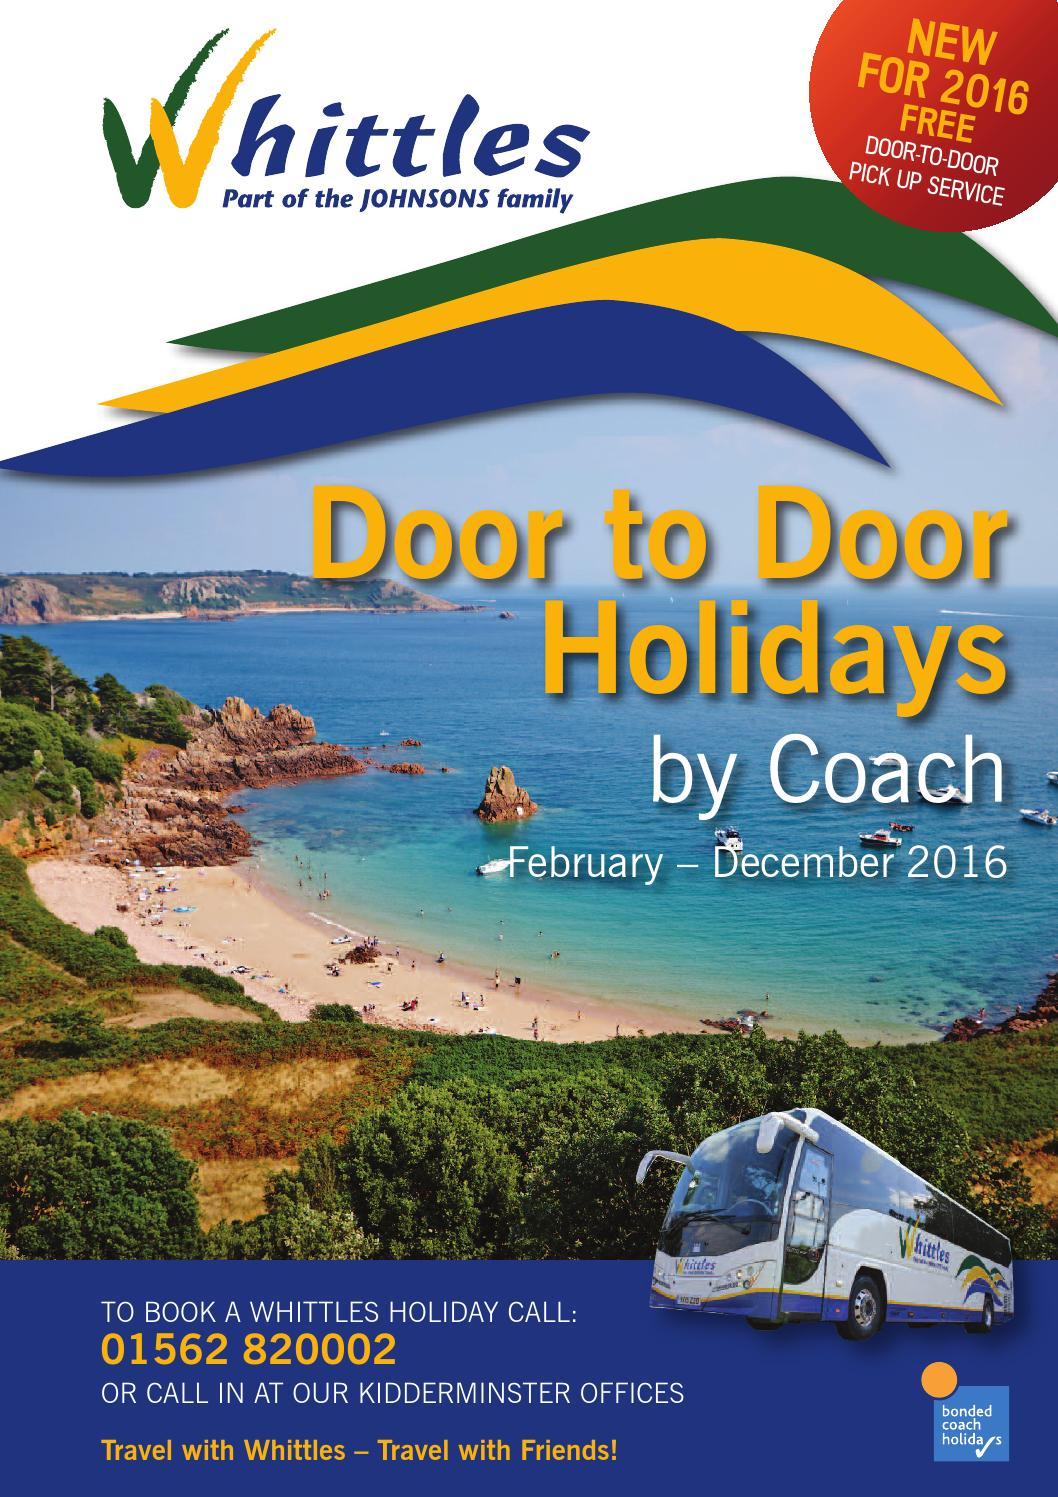 Whittles 2016 Holidays By Johnsons Coaches